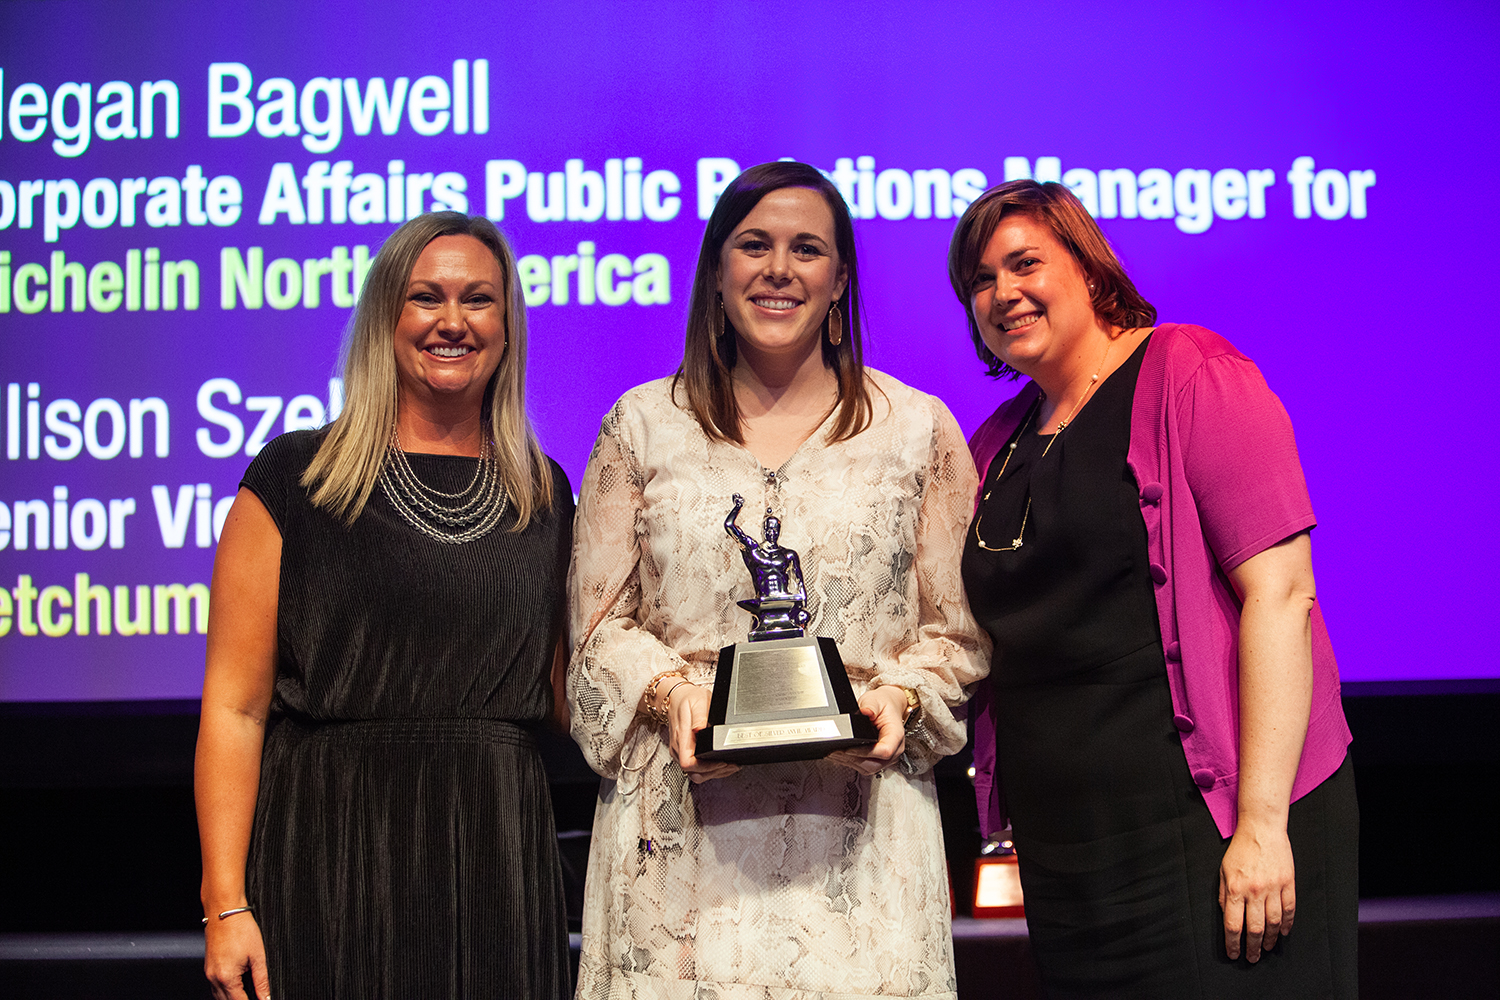 Michelin standing in-between two people, holding her Silver Anvil trophy at the International Conference